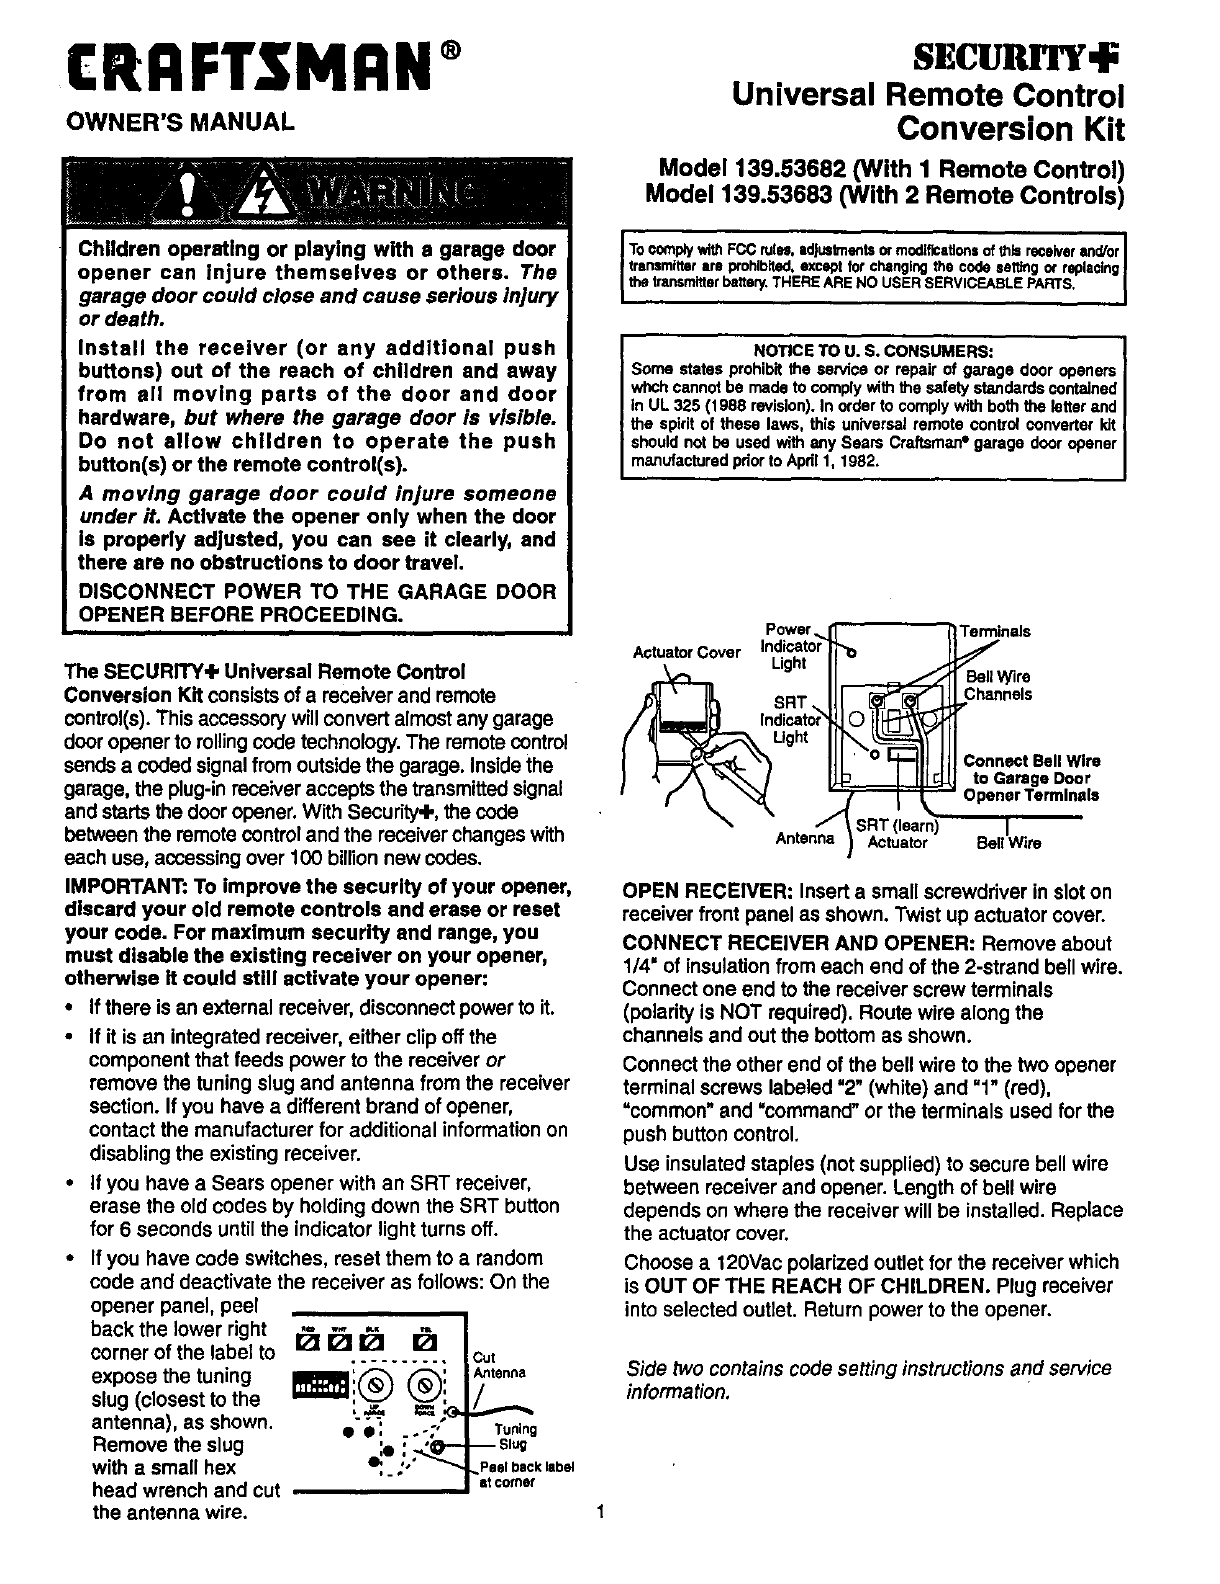 Elegant Craftsman 139.53682 Garage Door Opener User Manual